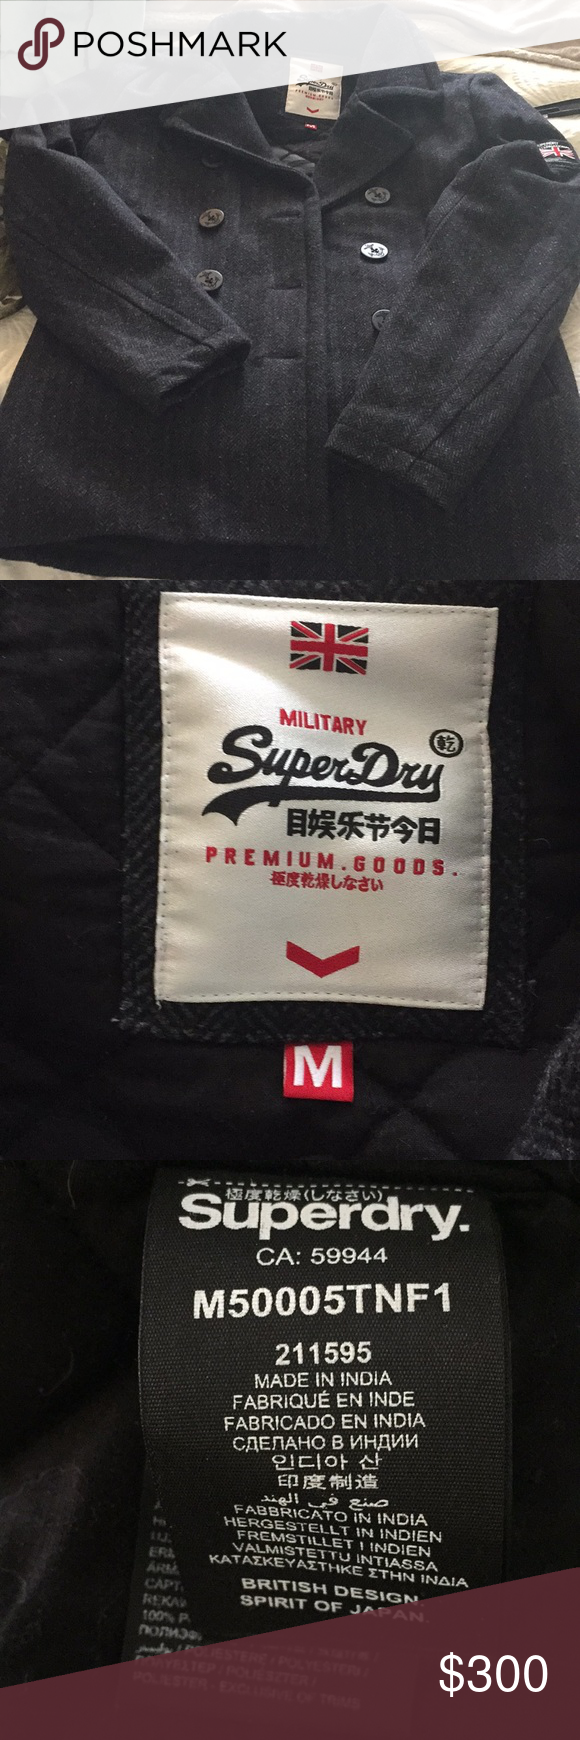 Superdry Coat Size M Fits Like Small Clothes Design Superdry Military Jacket Green [ 1740 x 580 Pixel ]